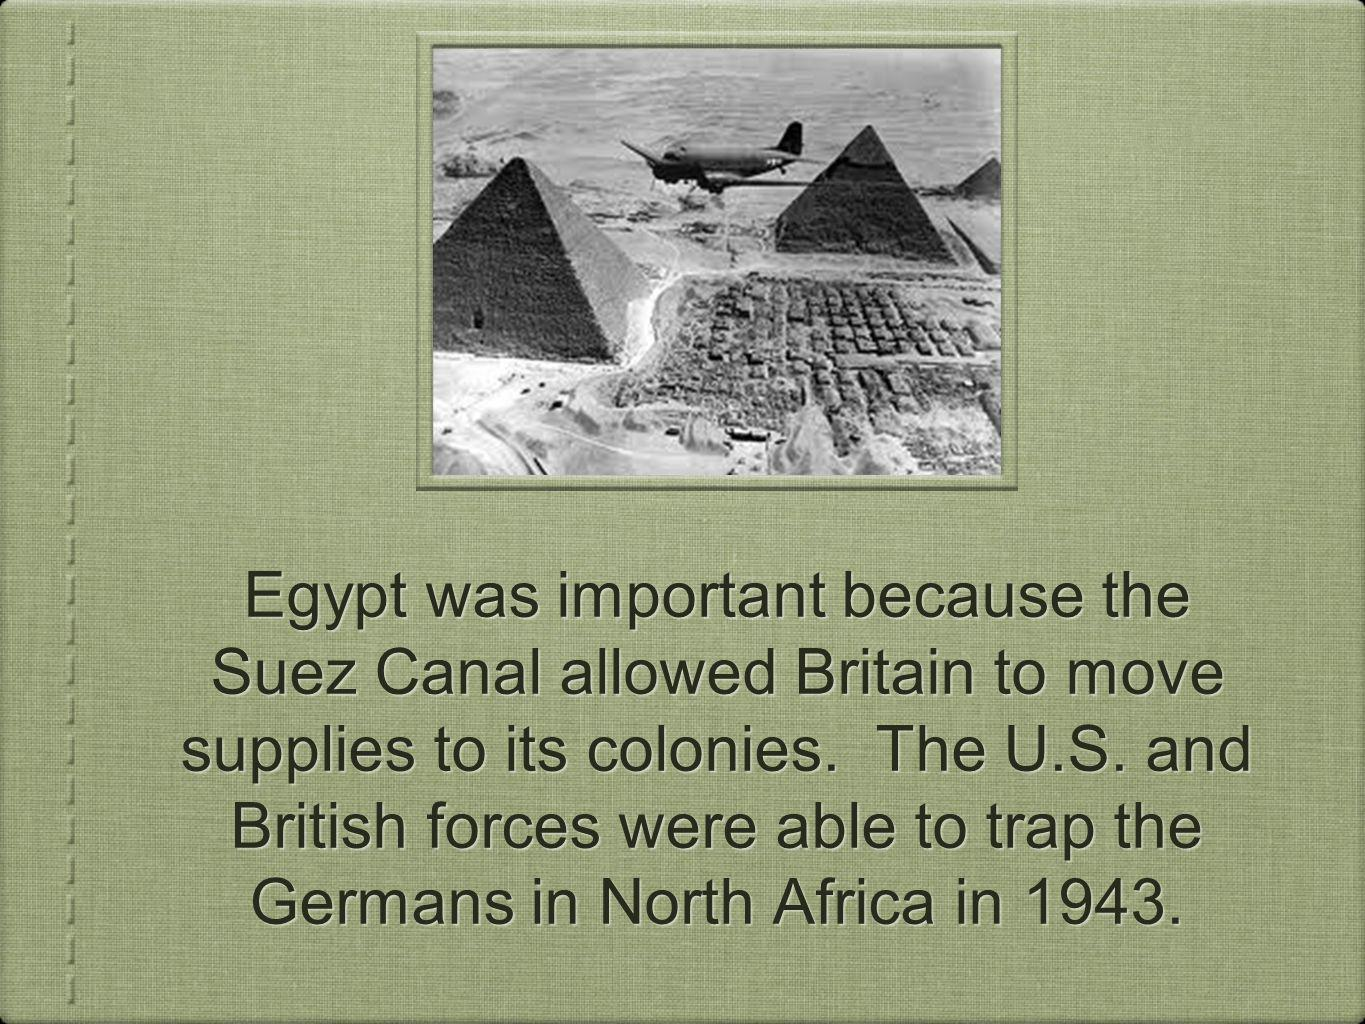 Egypt was important because the Suez Canal allowed Britain to move supplies to its colonies. The U.S. and British forces were able to trap the Germans